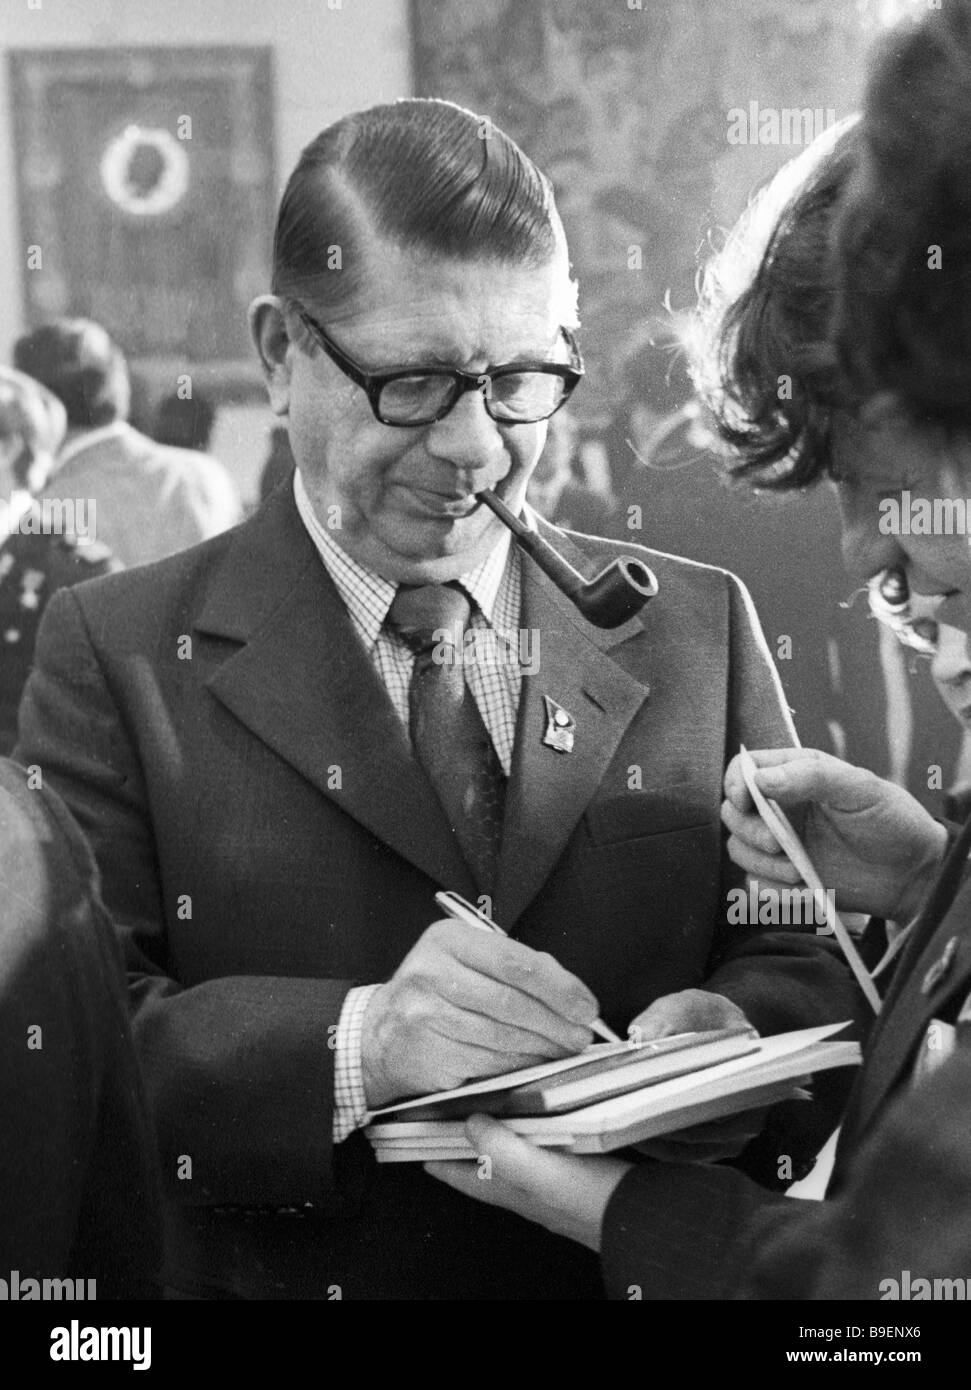 Chairman of the Communist Party of Finland Aarne Saarinen photographing during a break in the sessions of the 25th - Stock Image